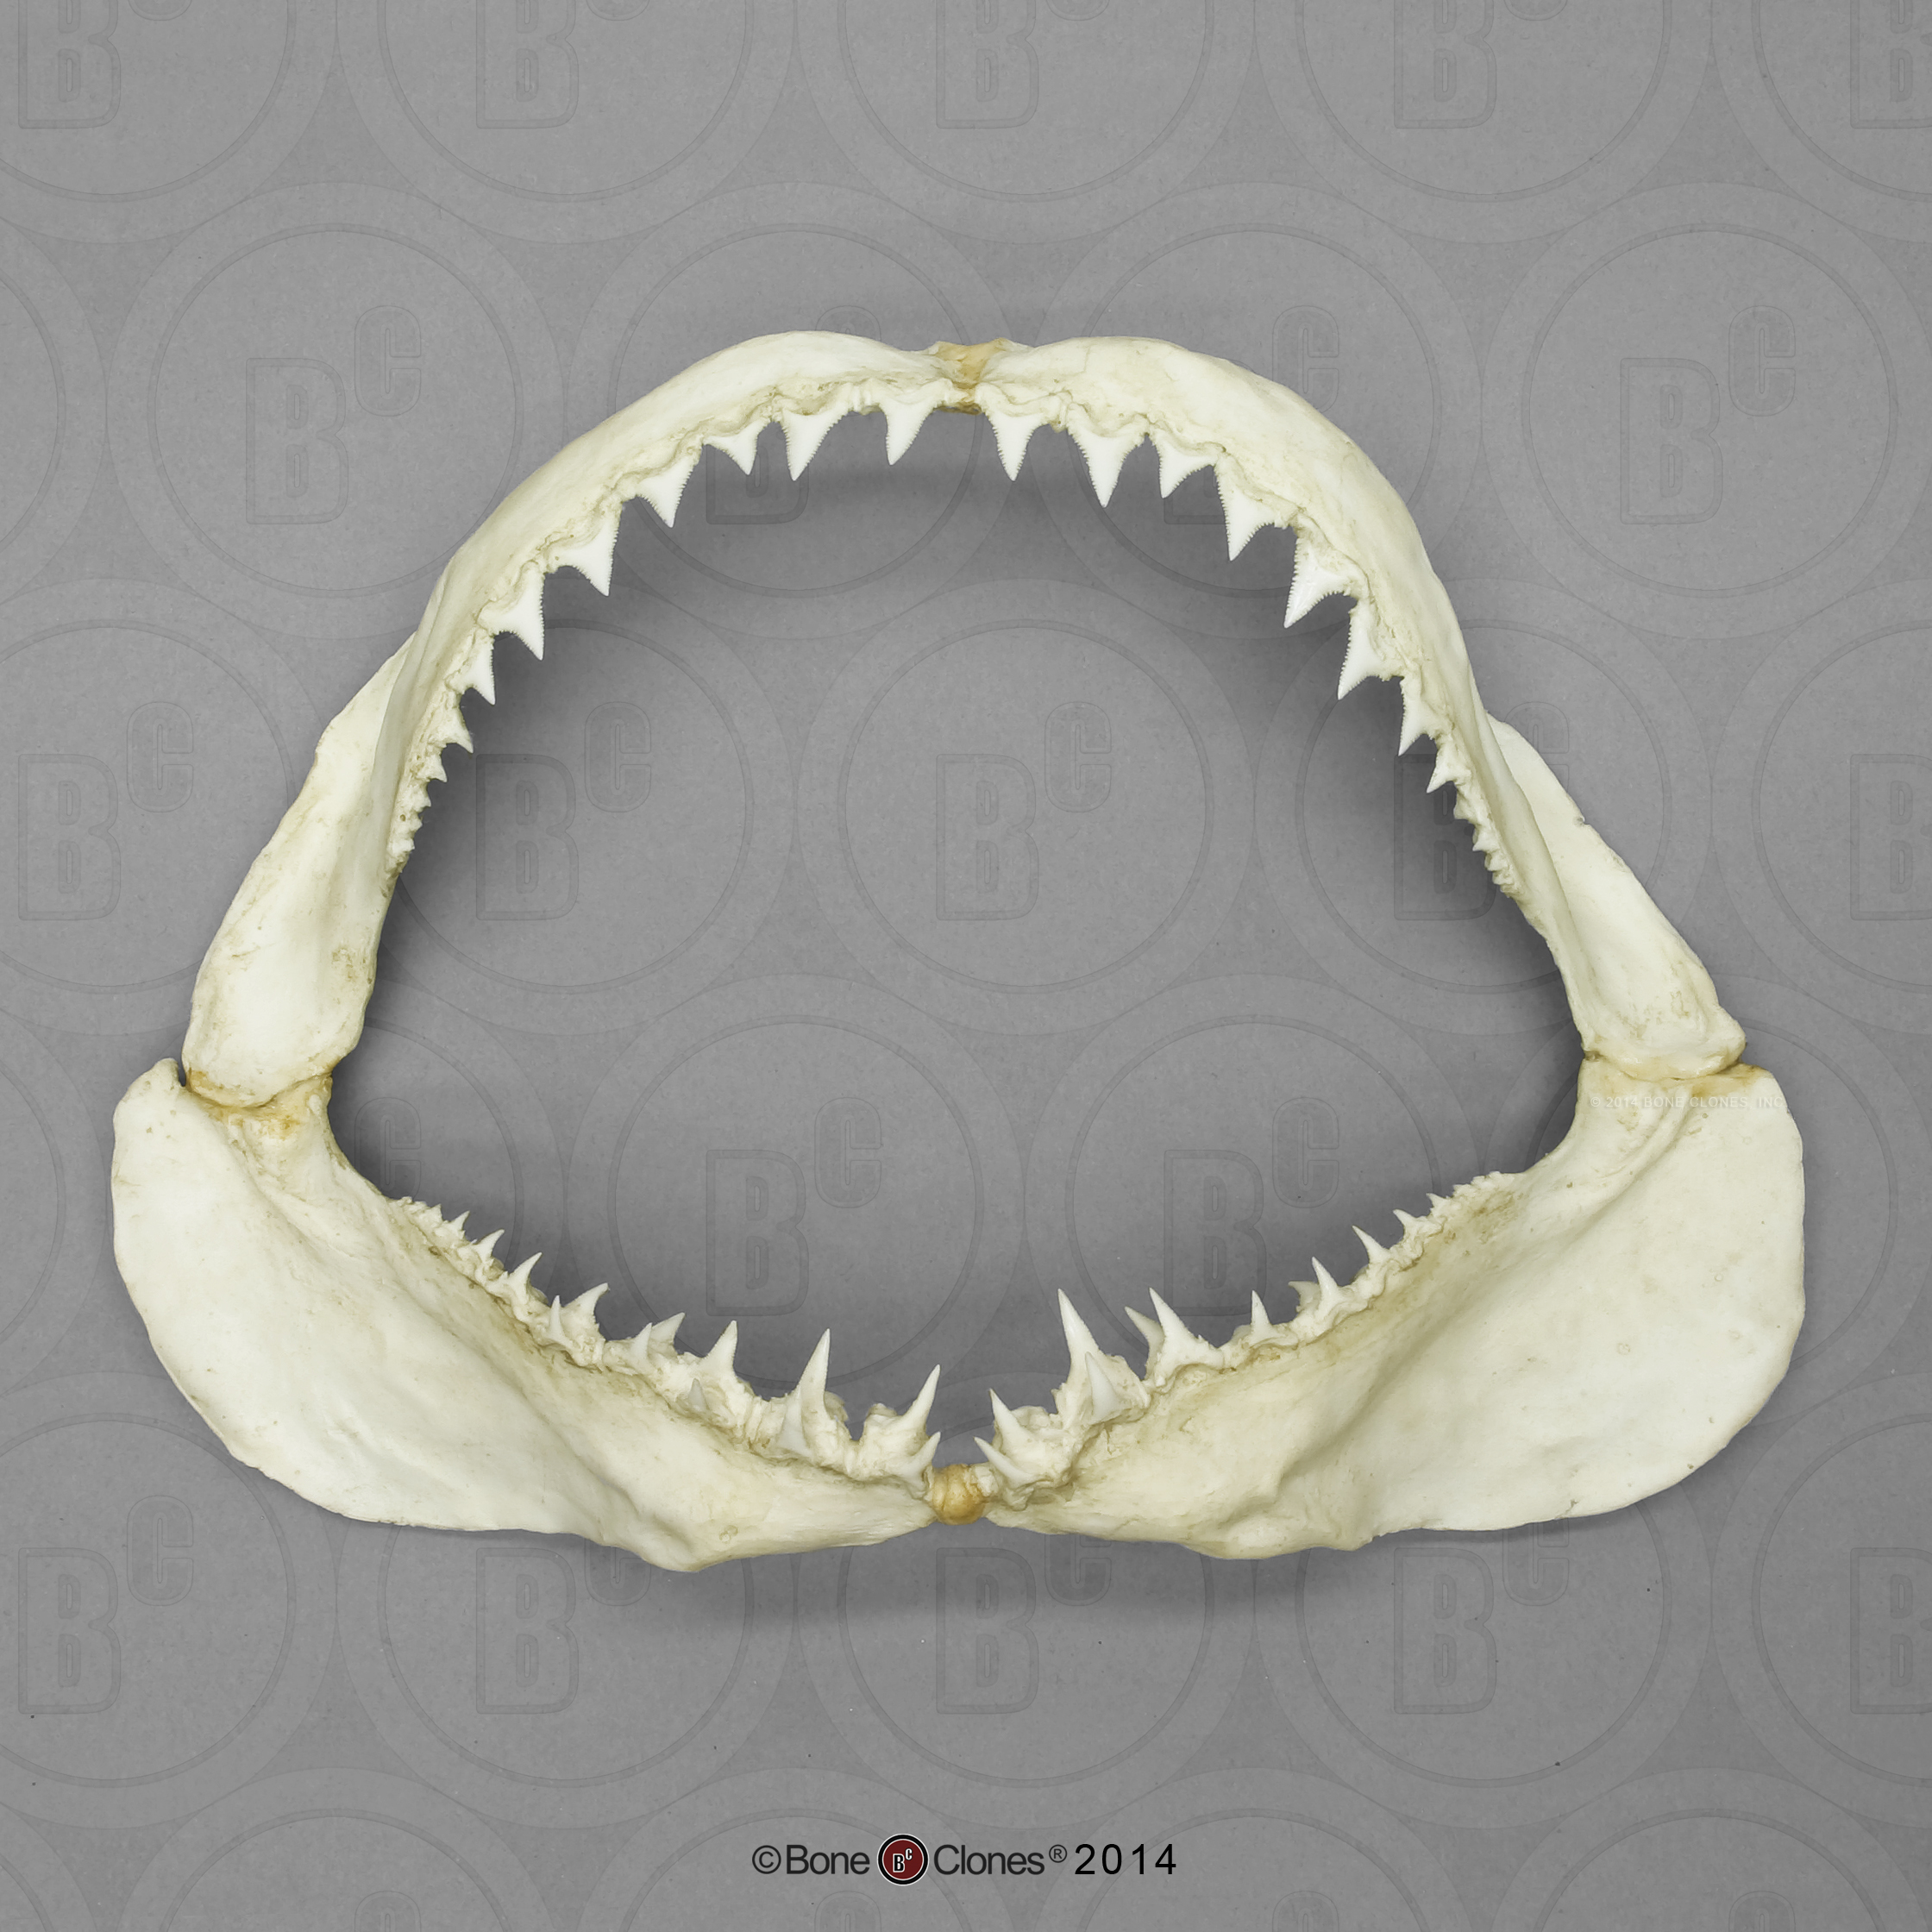 Megalodon Shark Jaw with 3 rows of 46 teeth - Bone Clones